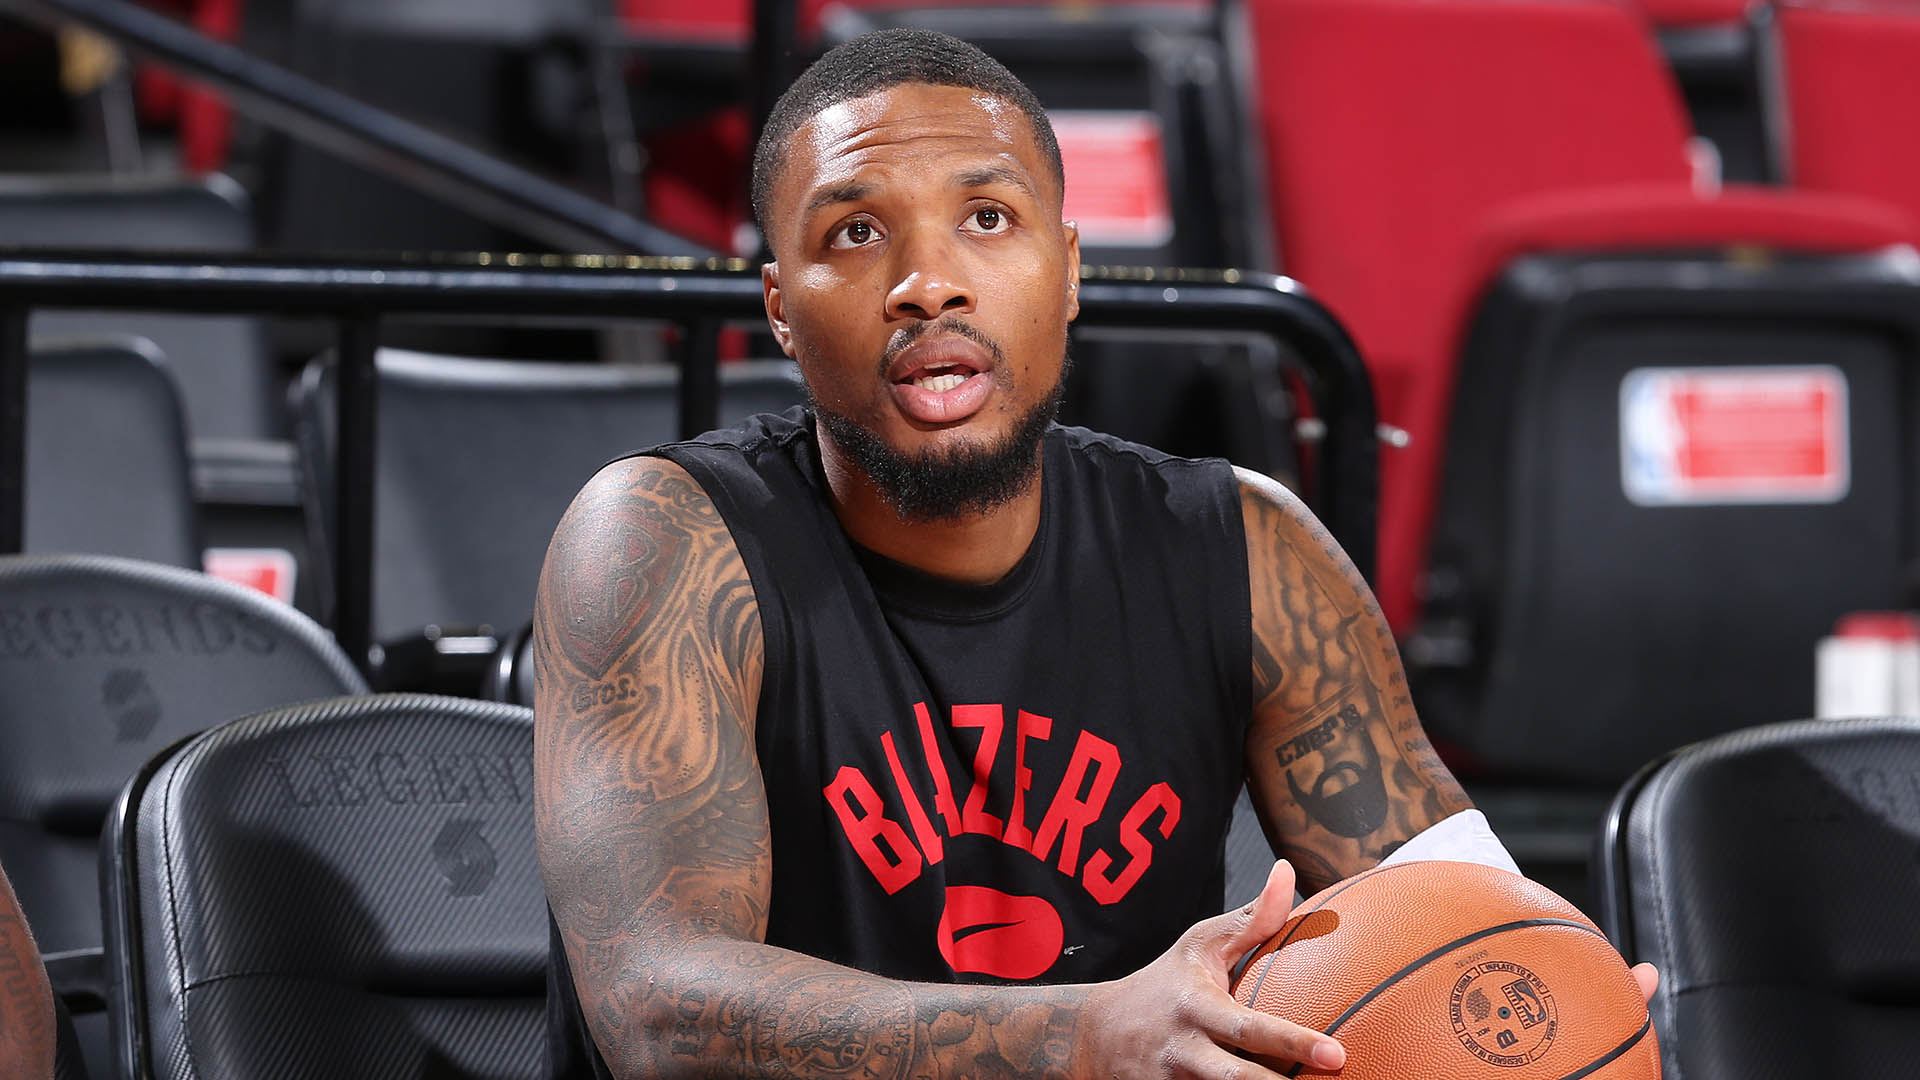 Why Lillard is 'all in' on Blazers this season